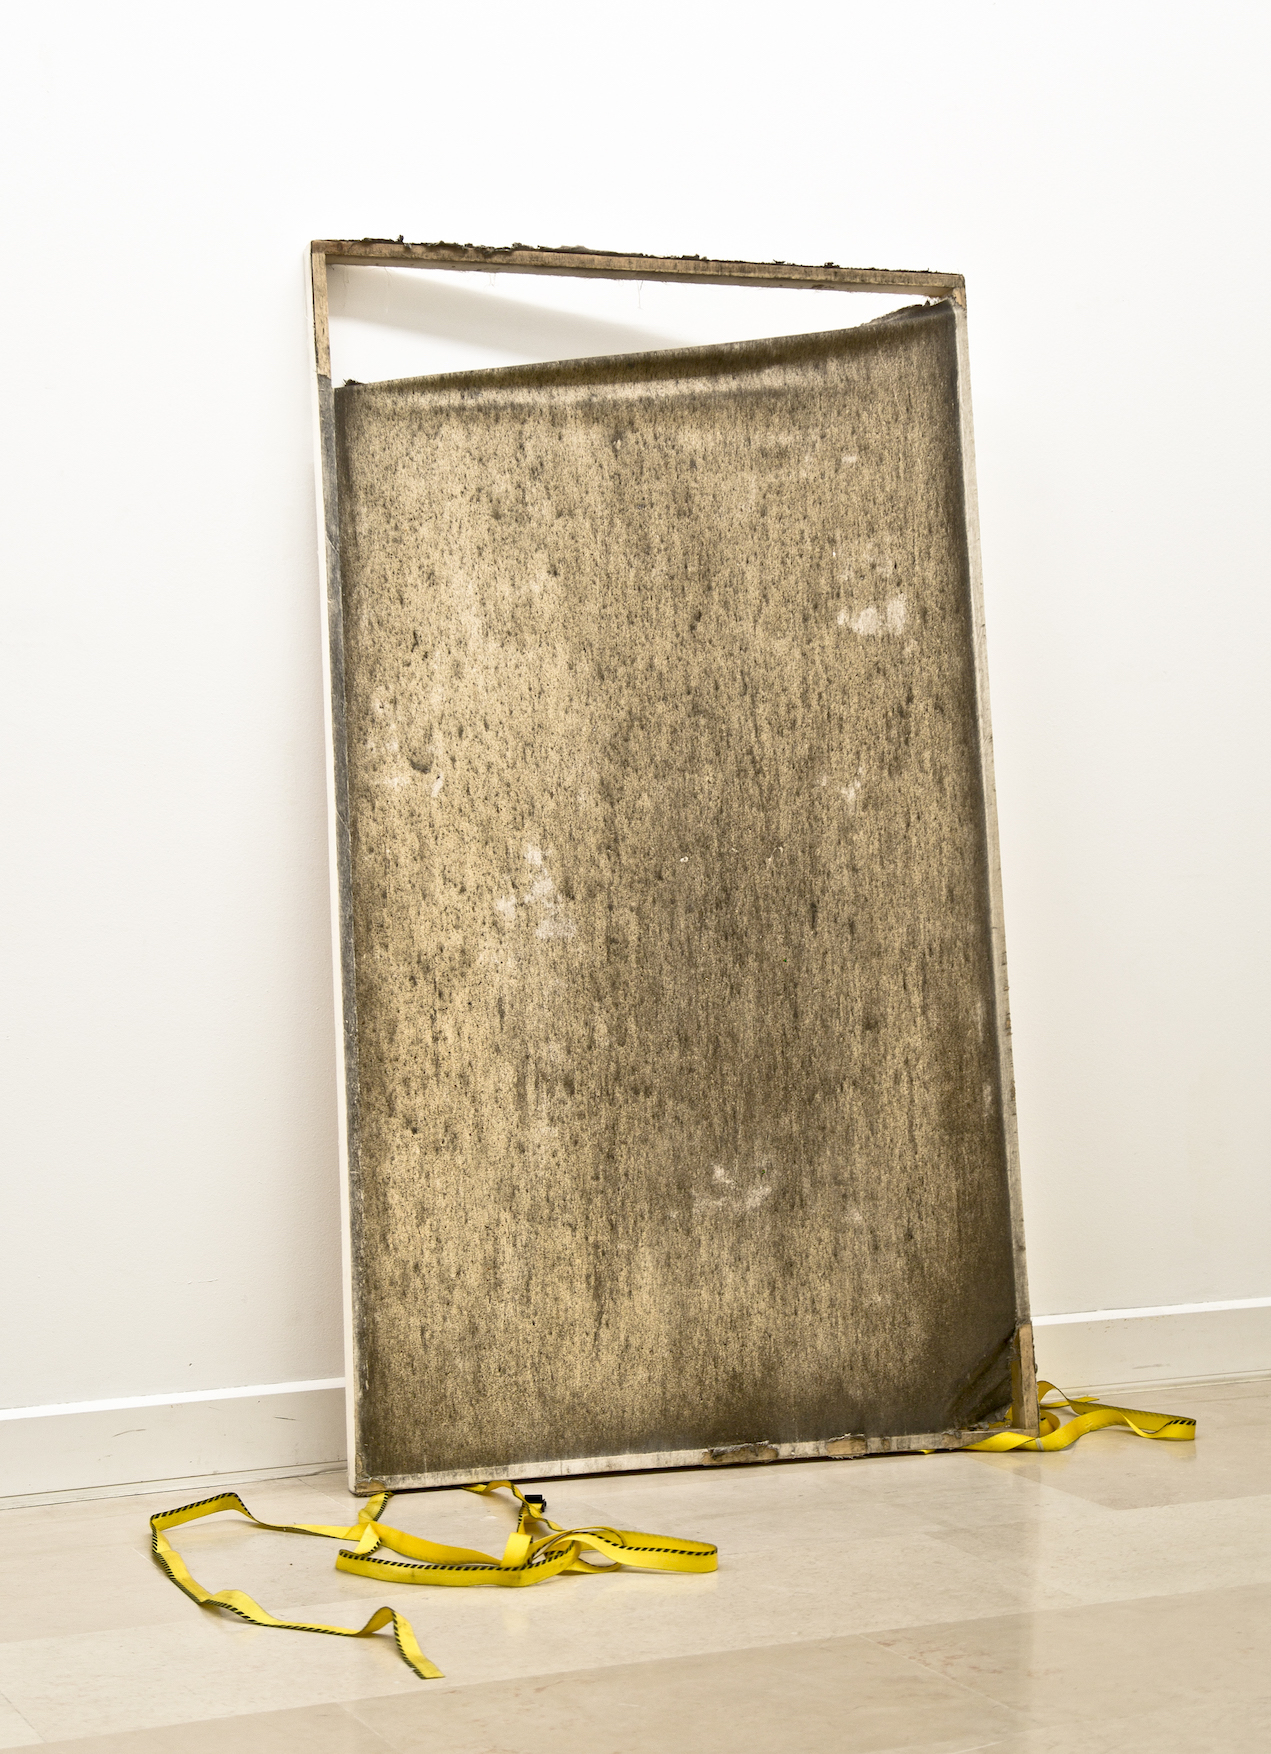 Julia Frank, Body Surface Area, London 2014, primed canvas, street residues and substances, wood, 100 x 170 x 5 cm